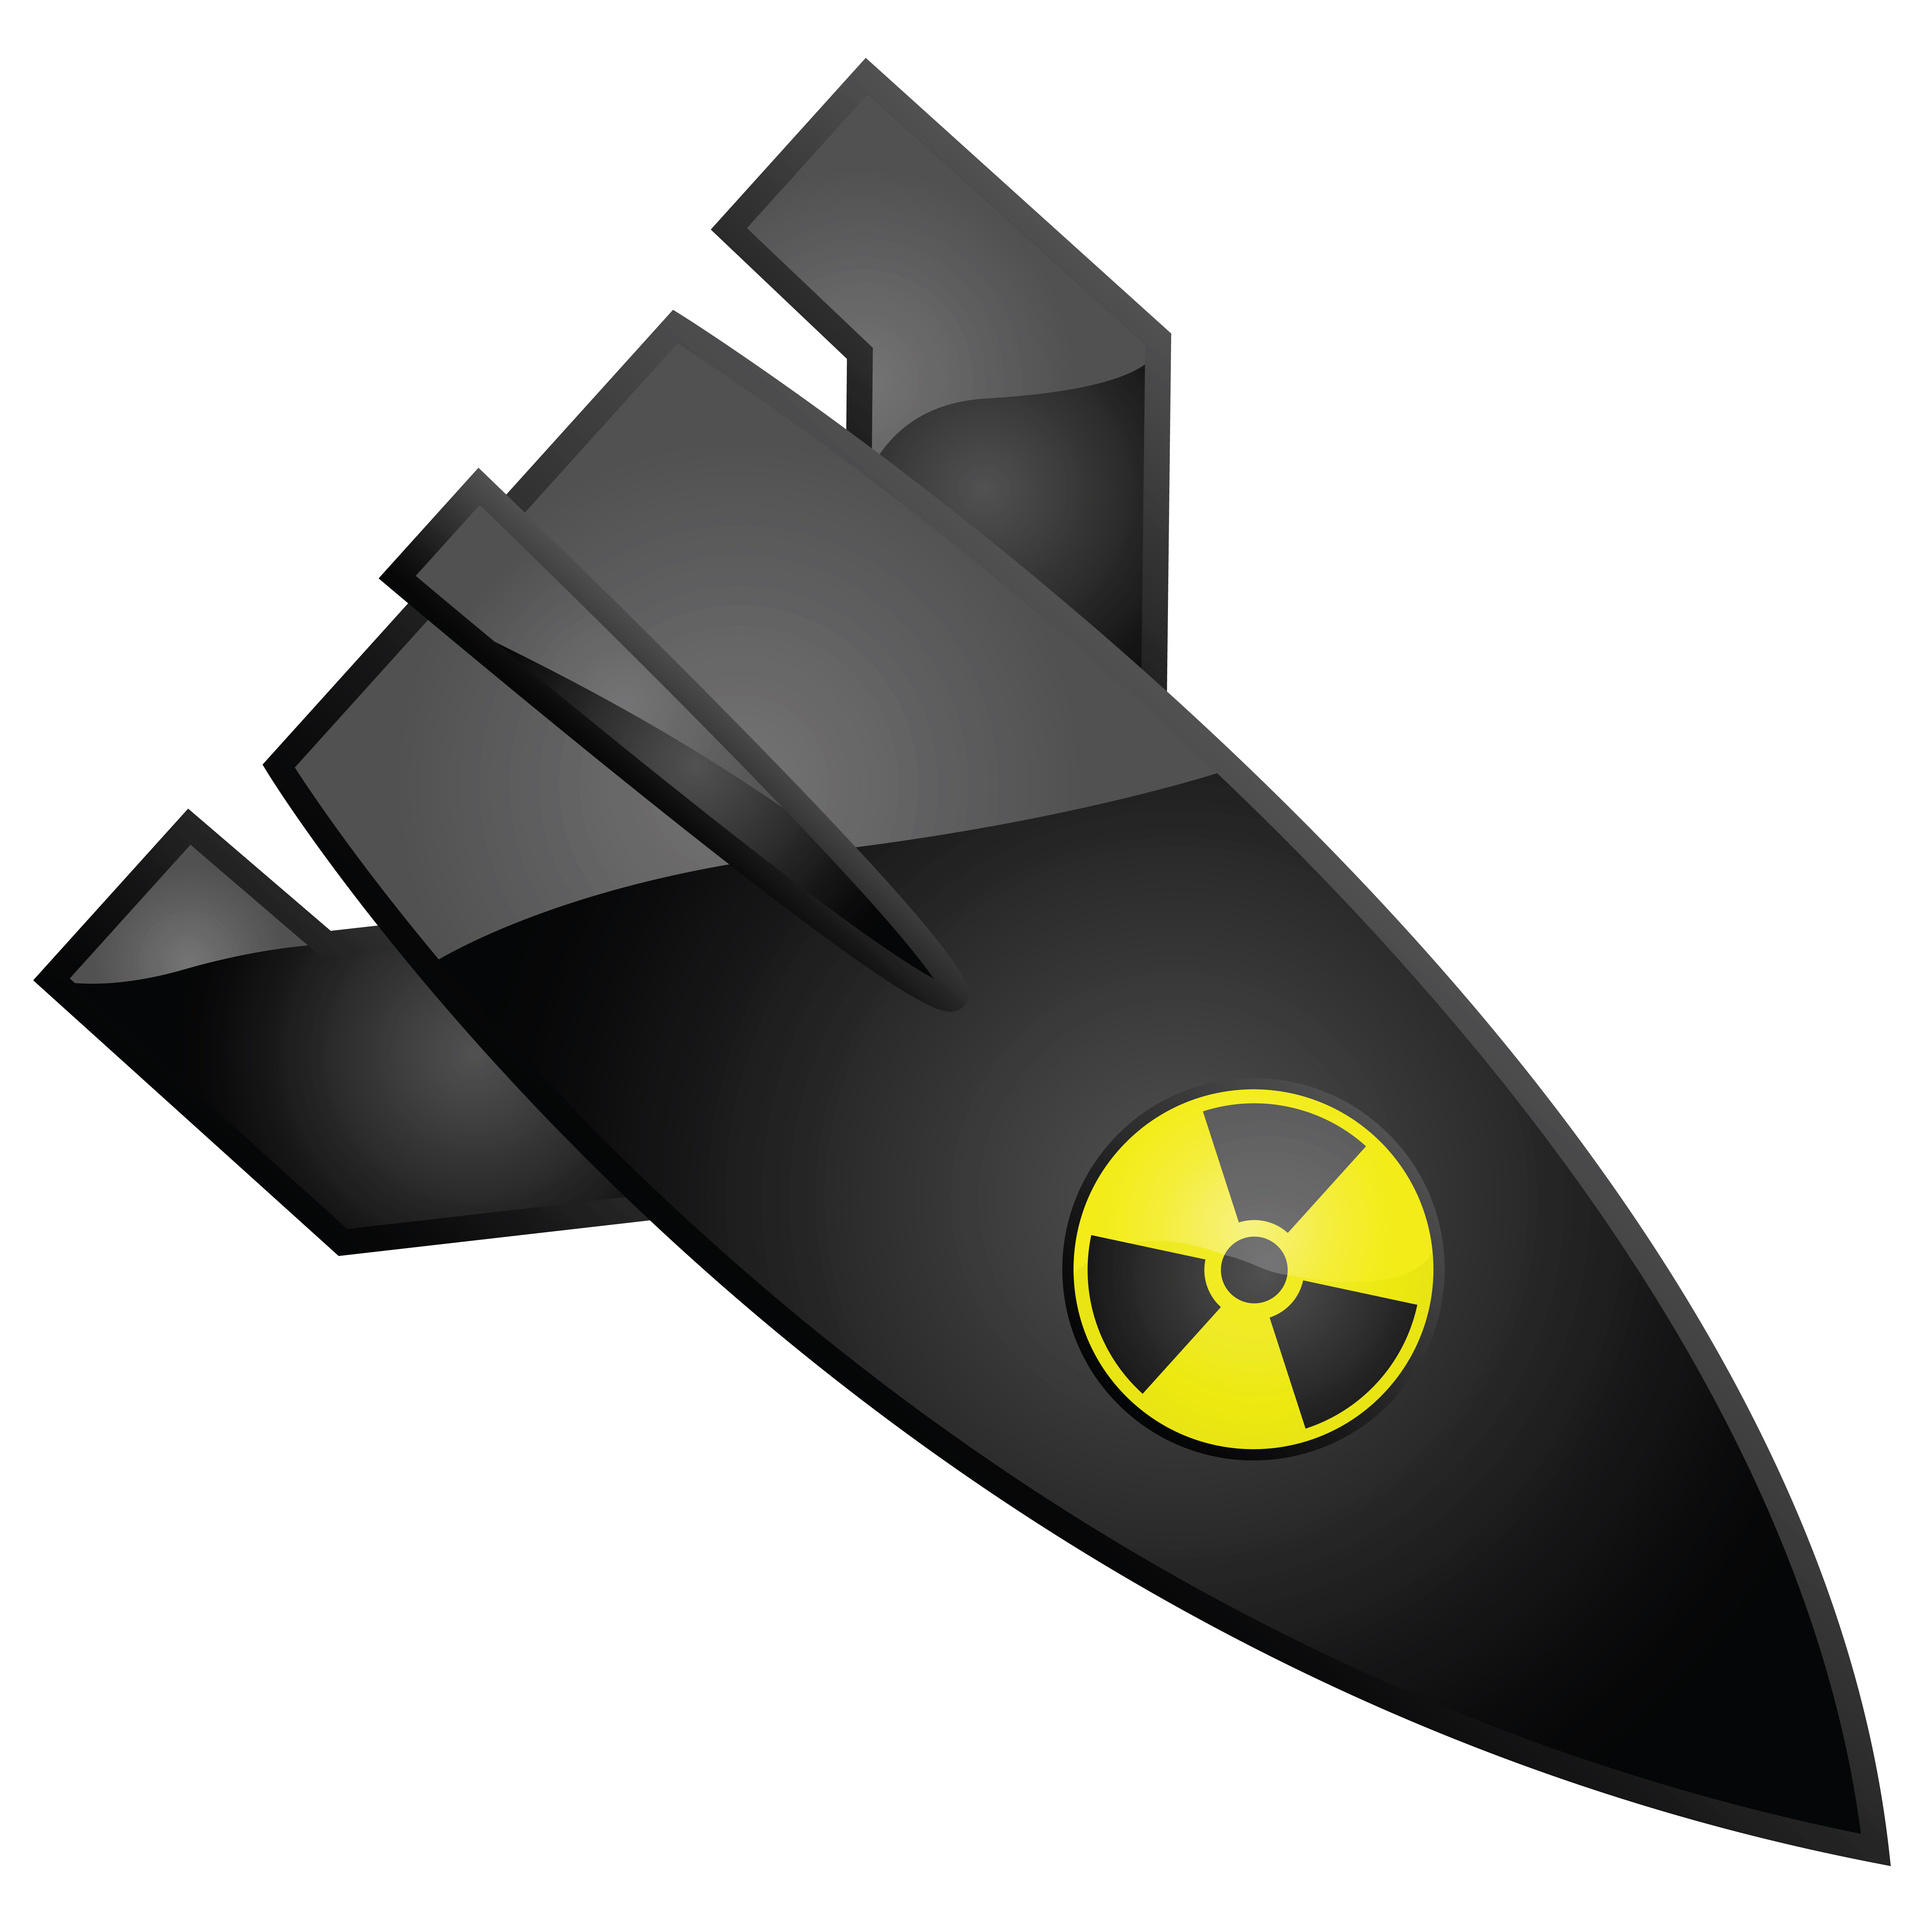 Nuclear Missile Clipart - Clipart Suggest